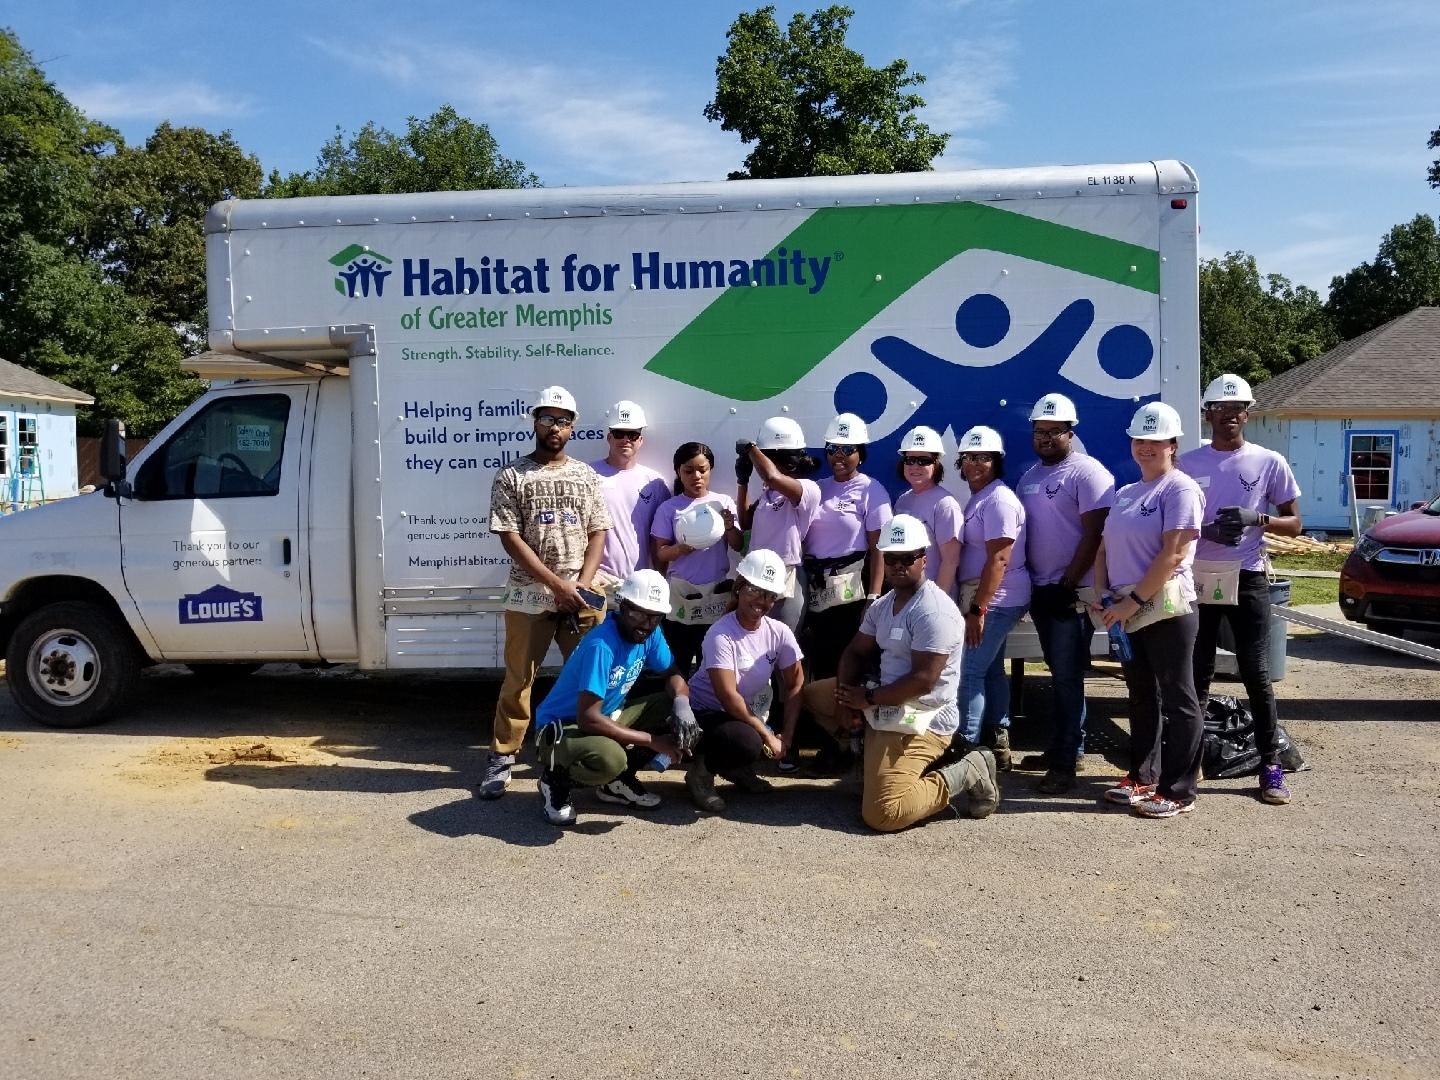 164th AW Volunteer for Local Habitat for Humanity